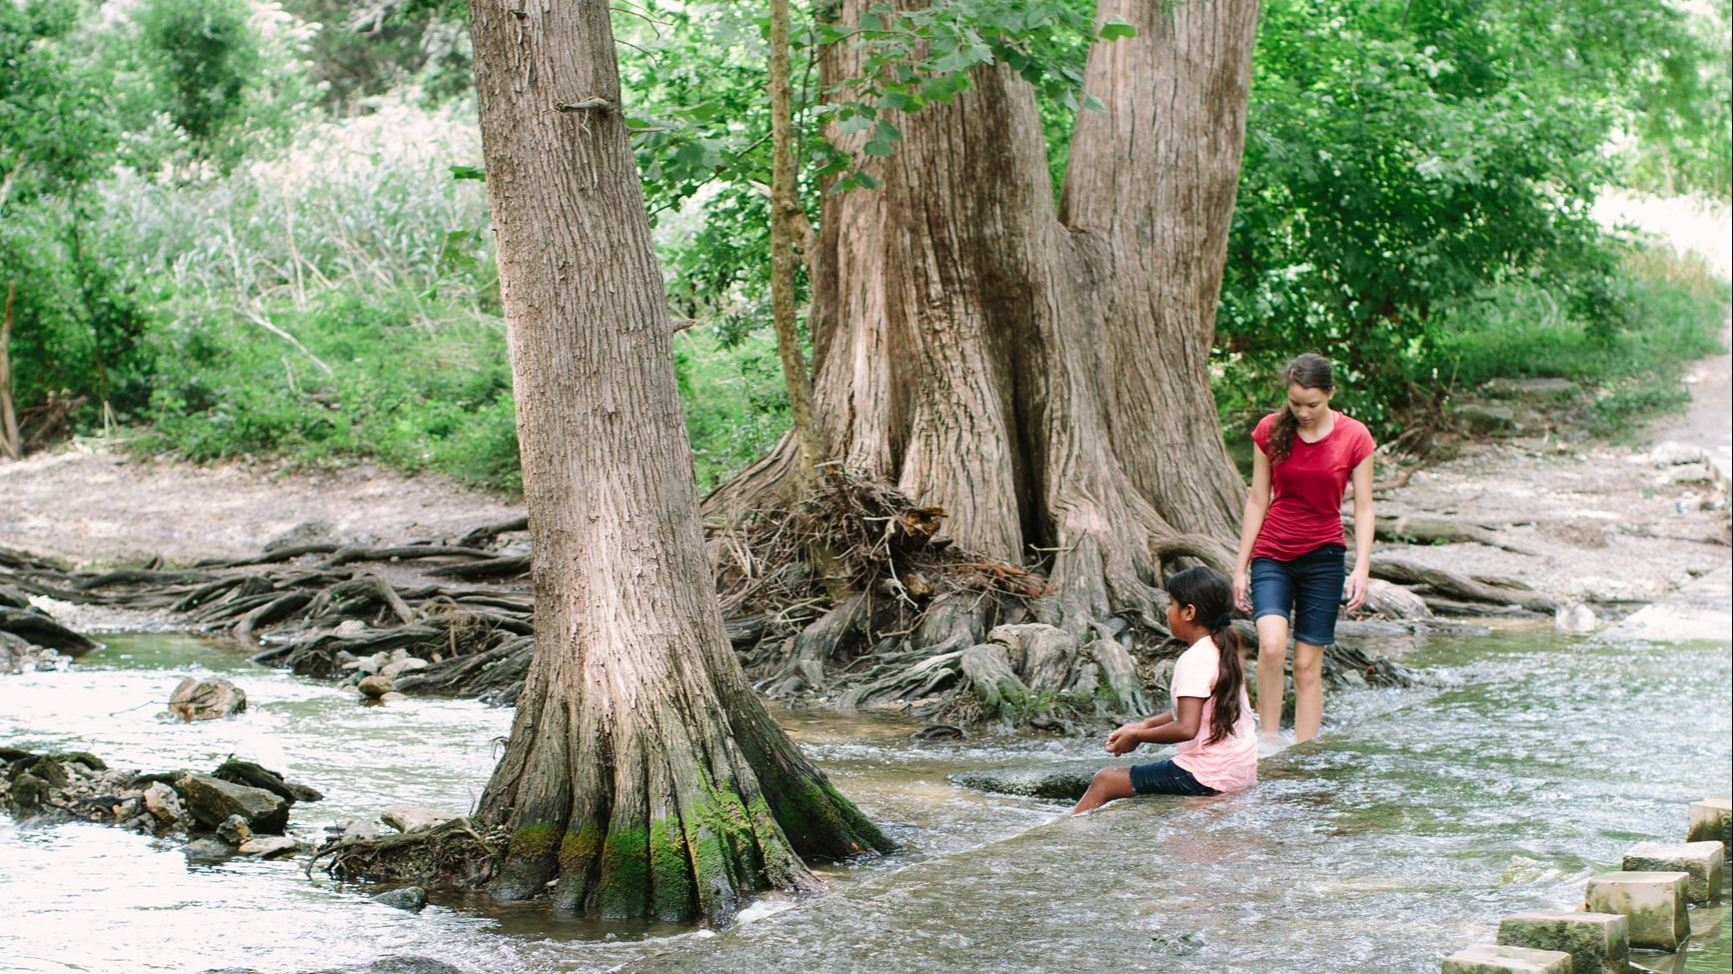 People playing in the Cibolo Creek- Photo by Allison Russell